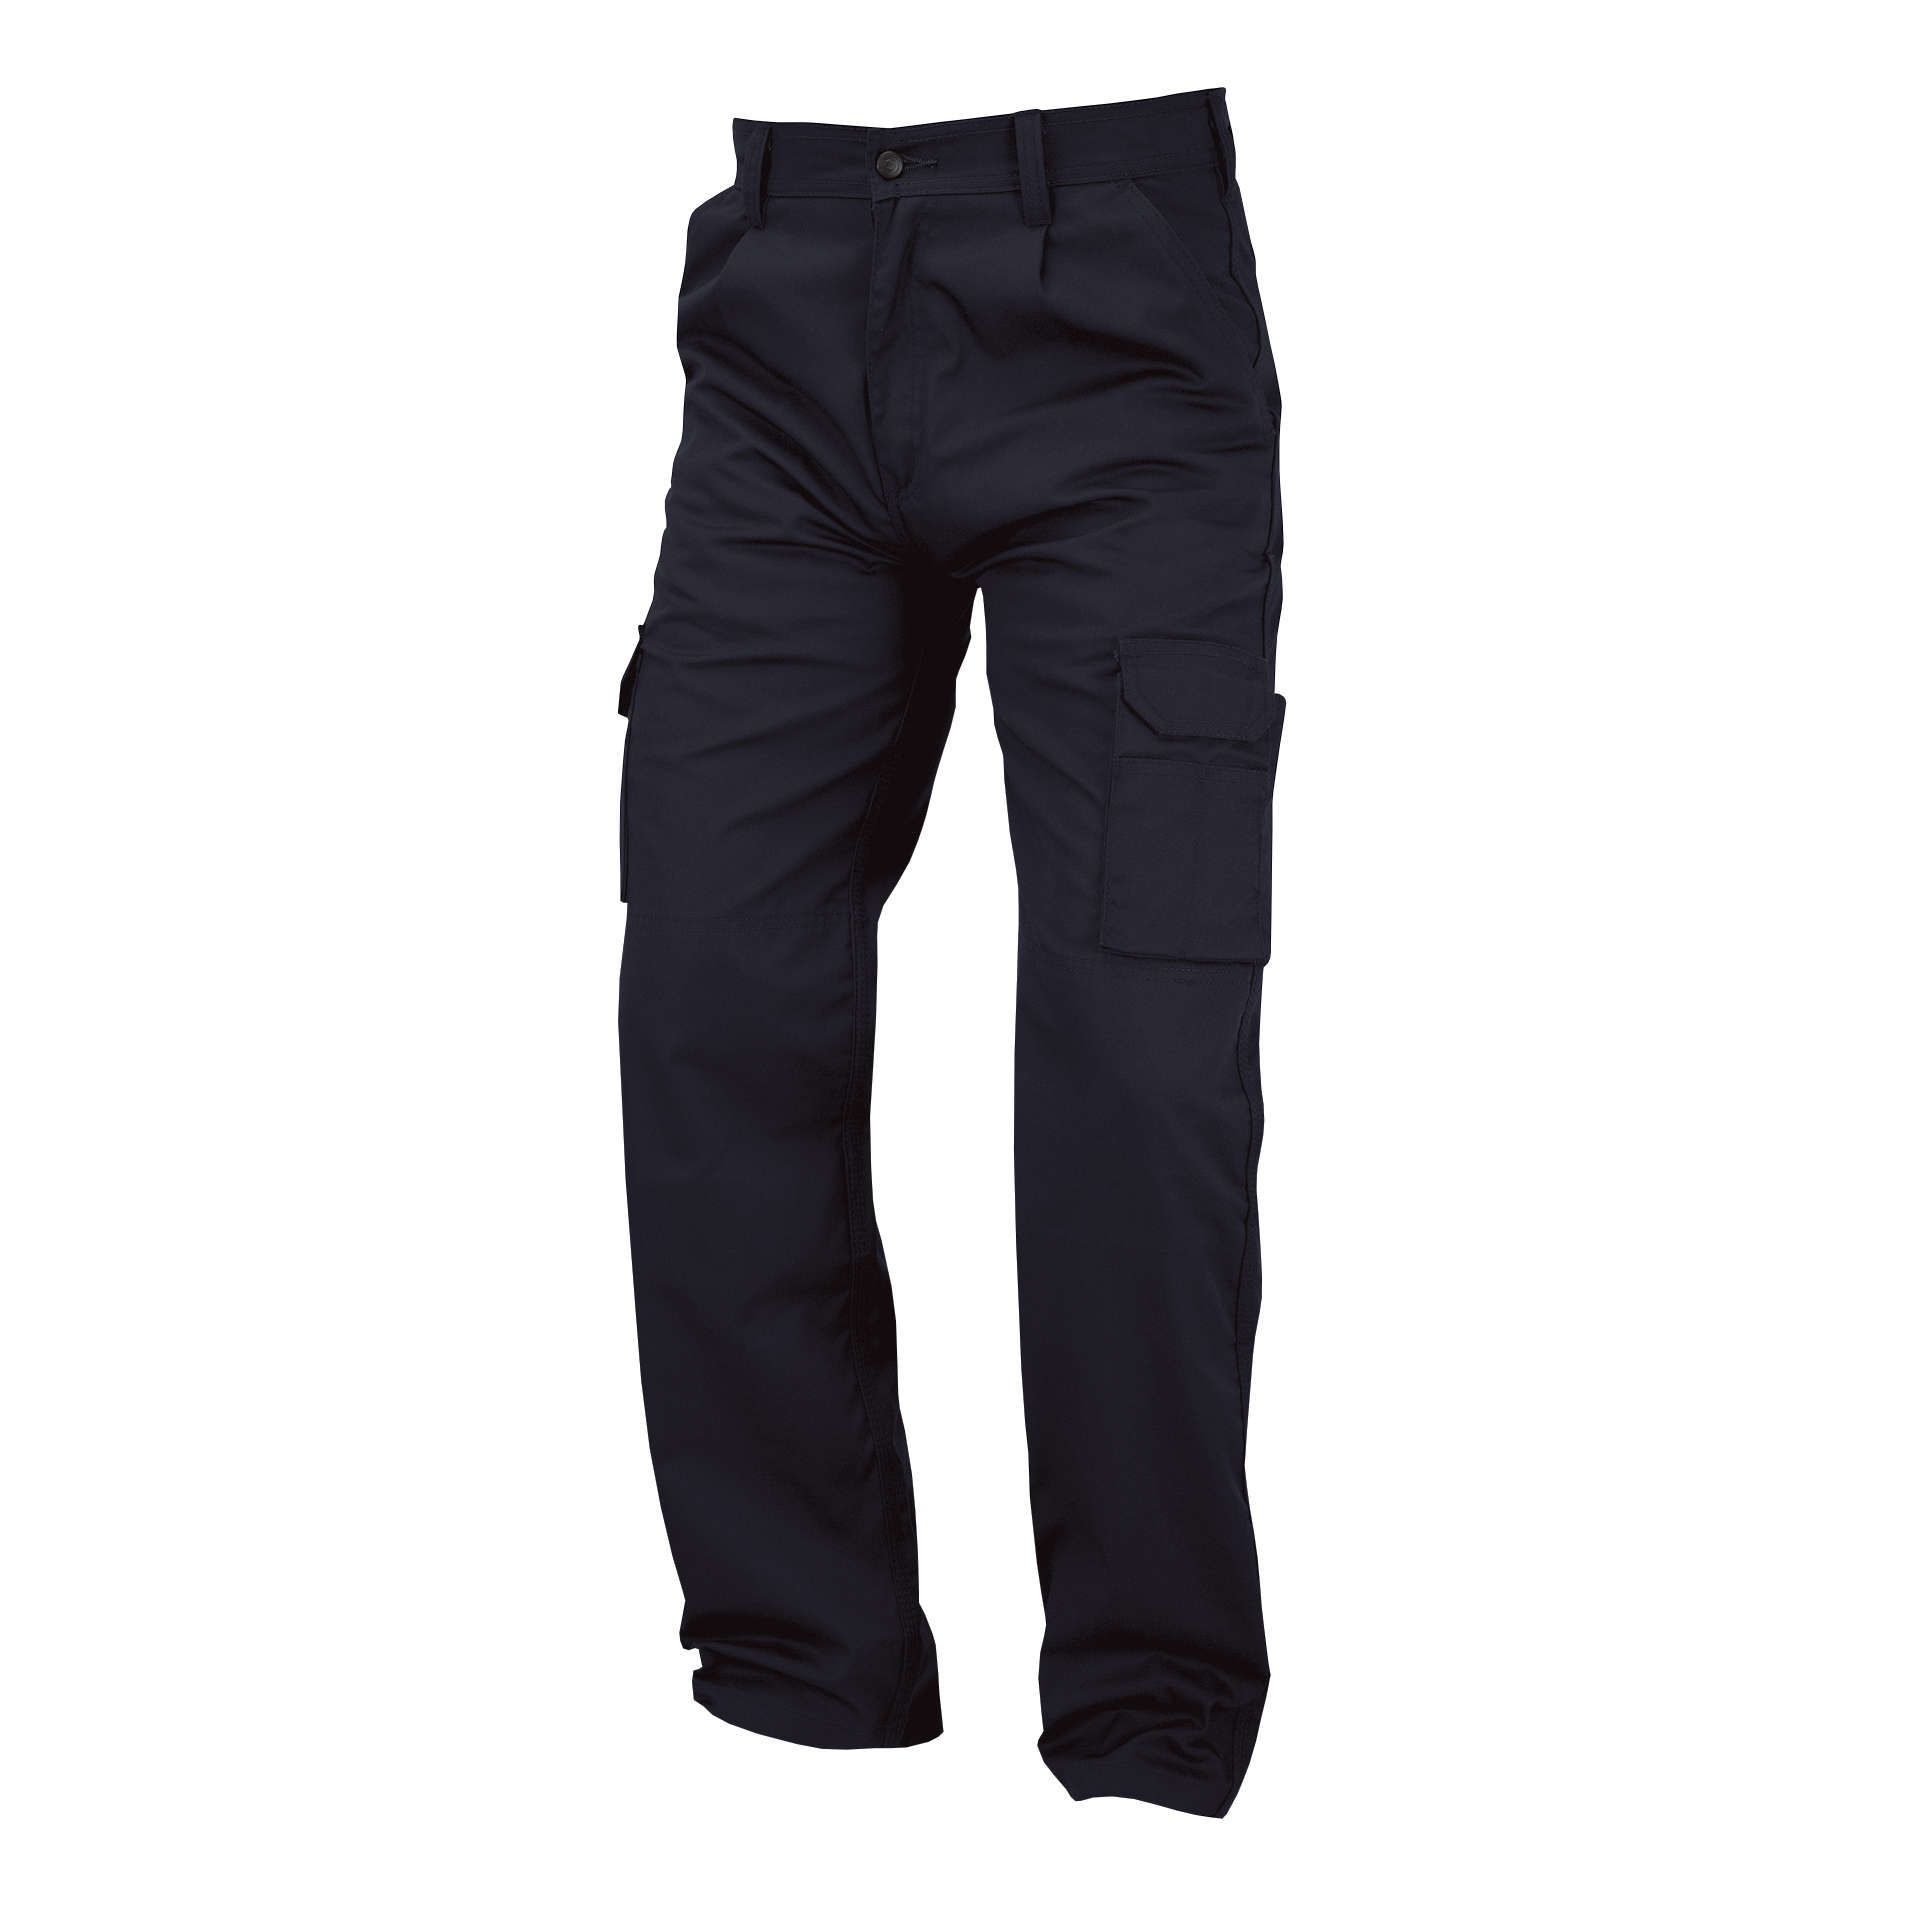 Combat Trousers Multifunctional 48in Long Navy Blue Ref PCTHWN48T *Approx 3 Day Leadtime*